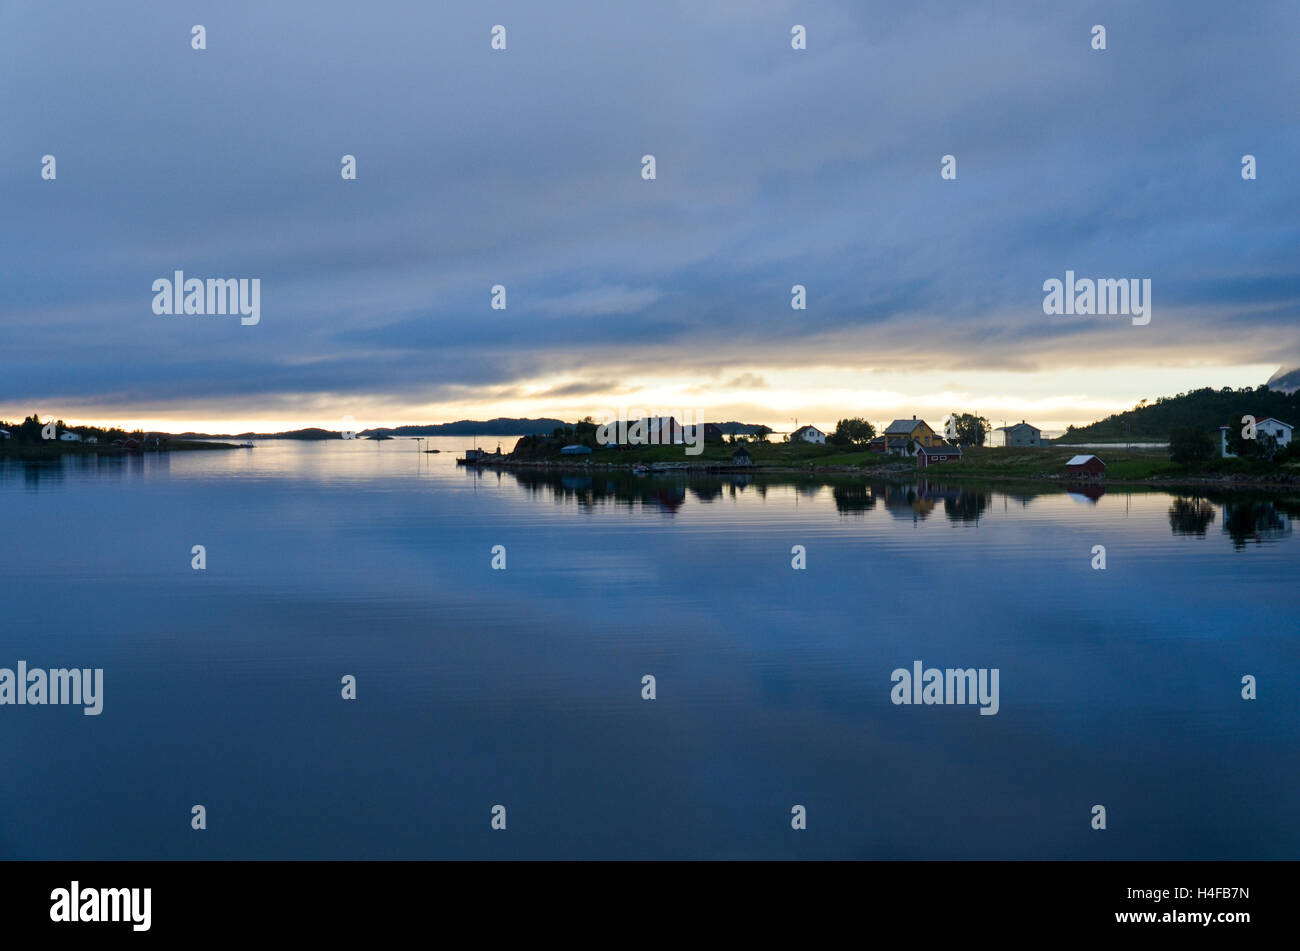 Cloudy sunset at midnight over a few houses on the island of Senja, Northern Norway - Stock Image